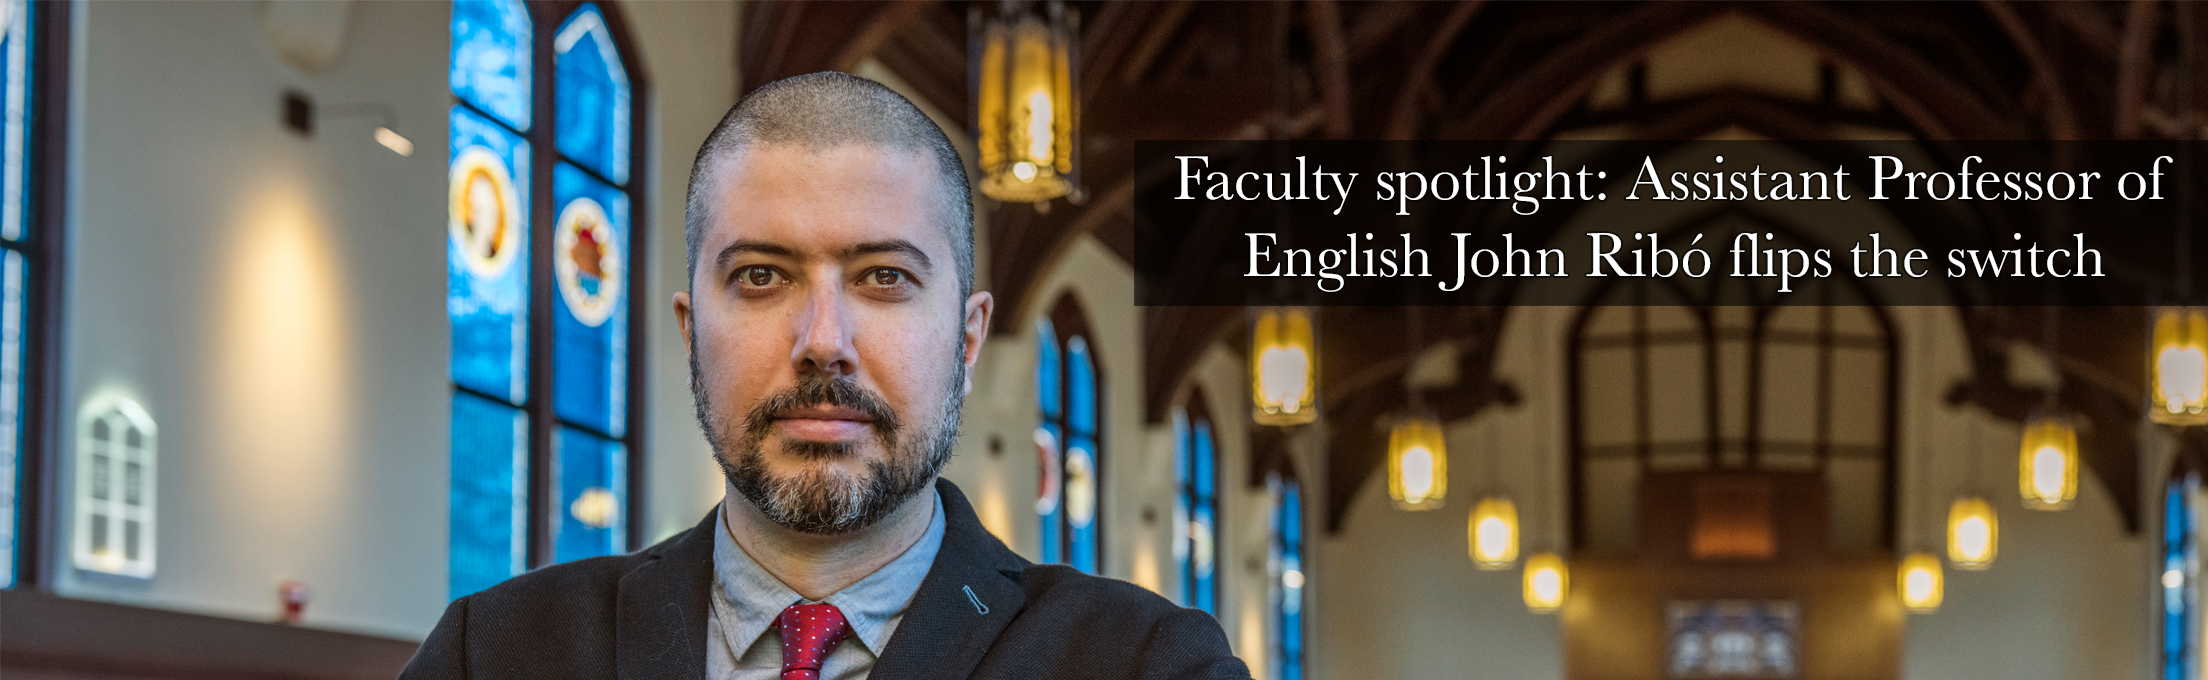 FACULTY SPOTLIGHT: Assistant Professor of English John Ribó flips the switch